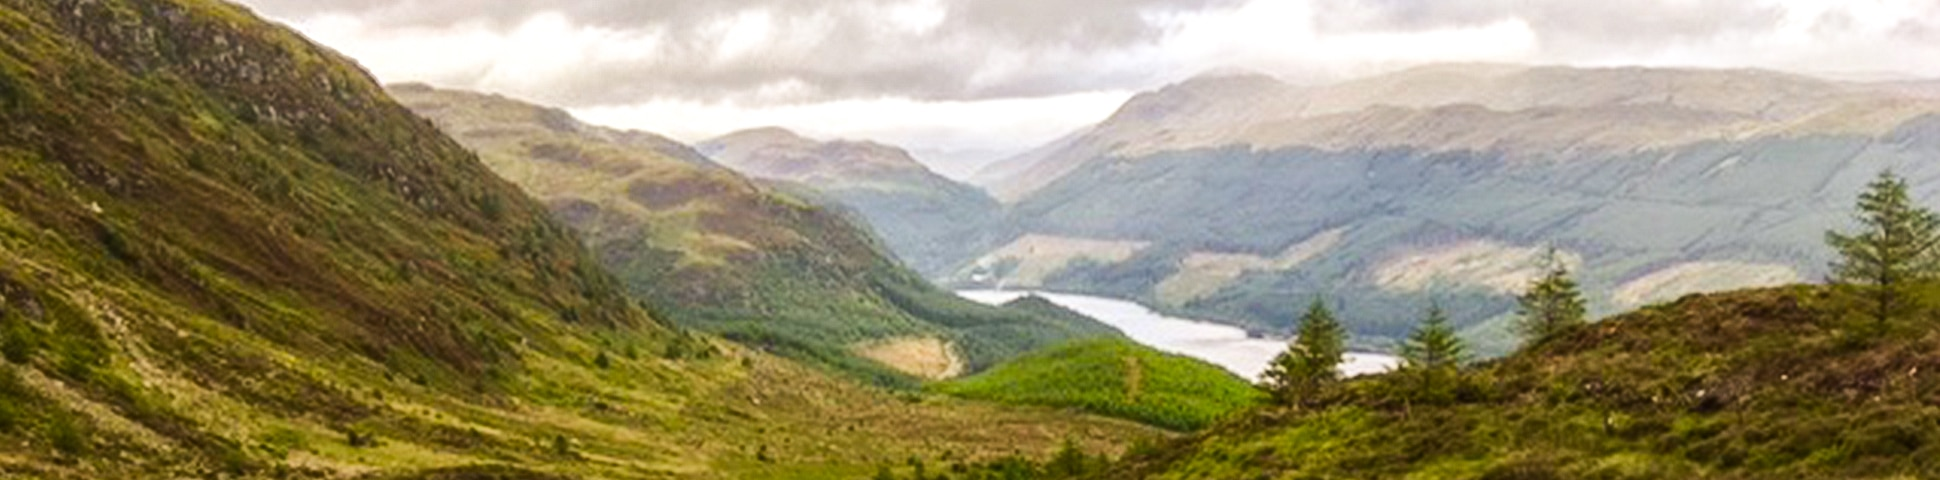 Panorama on Ben Ledi hike in Loch Lomond and The Trossachs area in Scotland